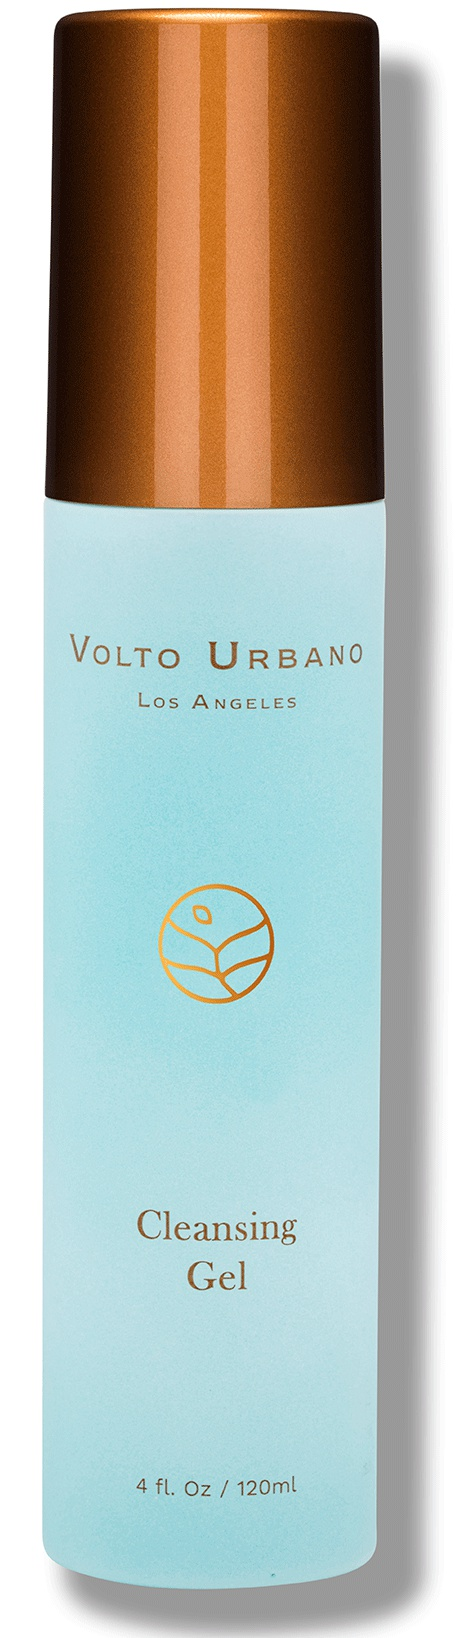 Volto Urbano Cleansing Gel